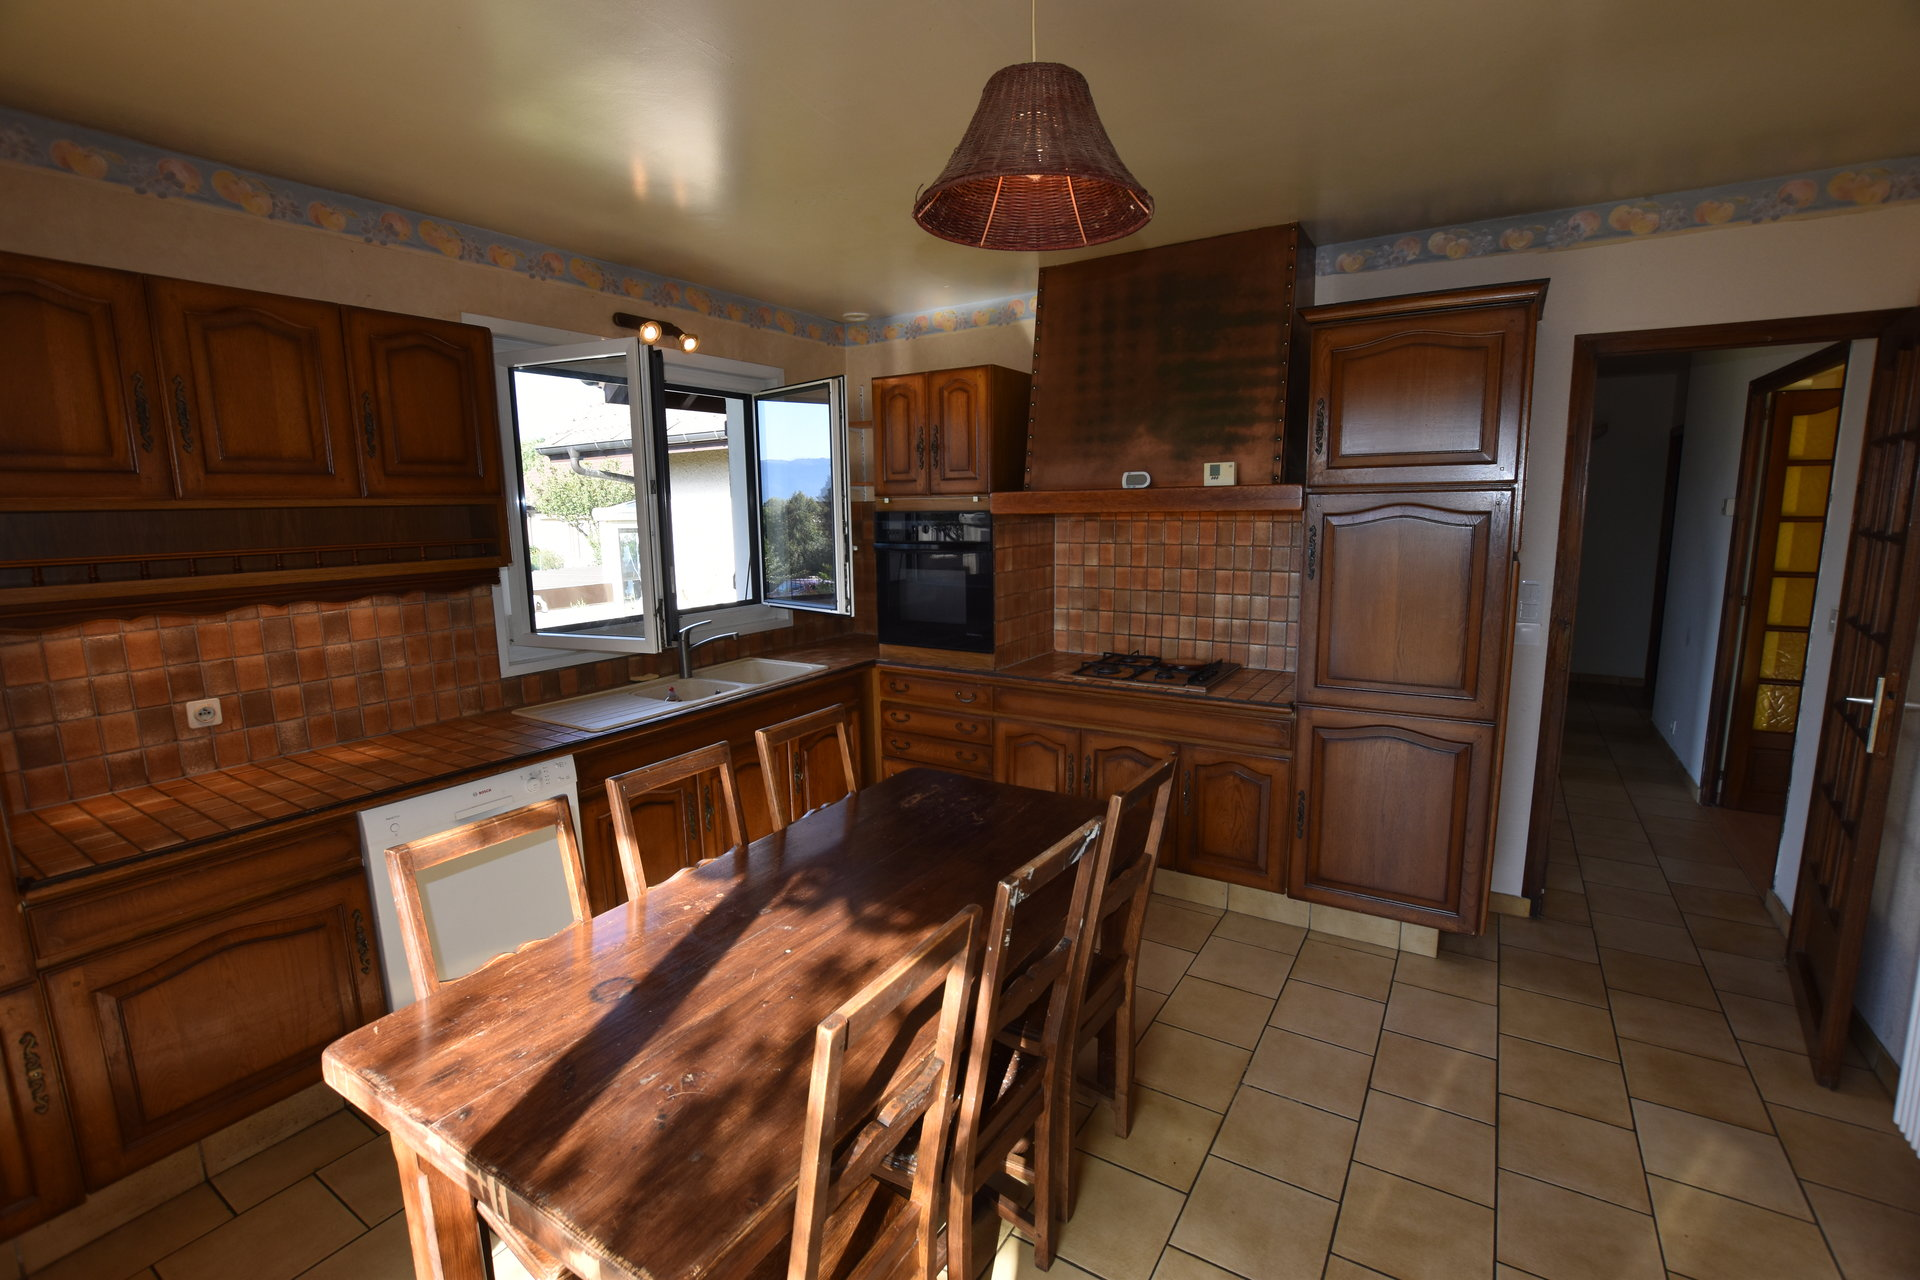 Sale House - Saint-Julien-en-Genevois